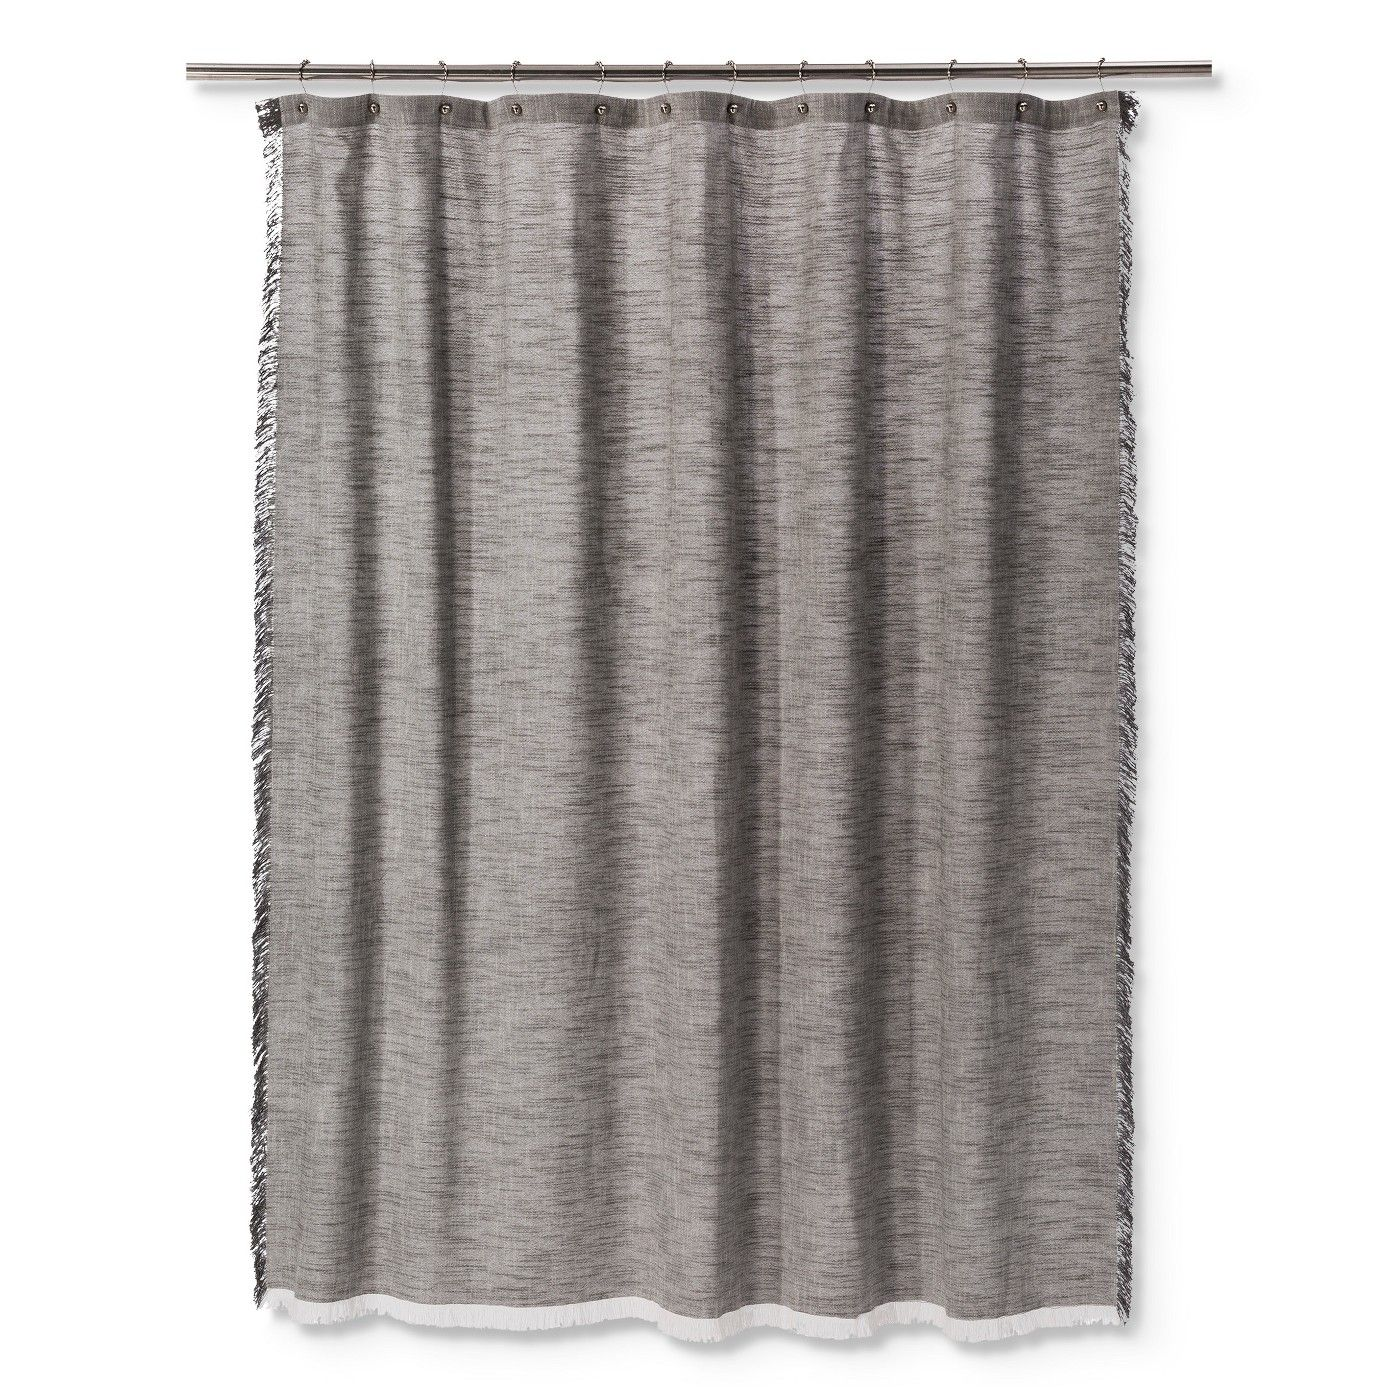 Woven Fringe Shower Curtain Gray Threshold Grey Curtains